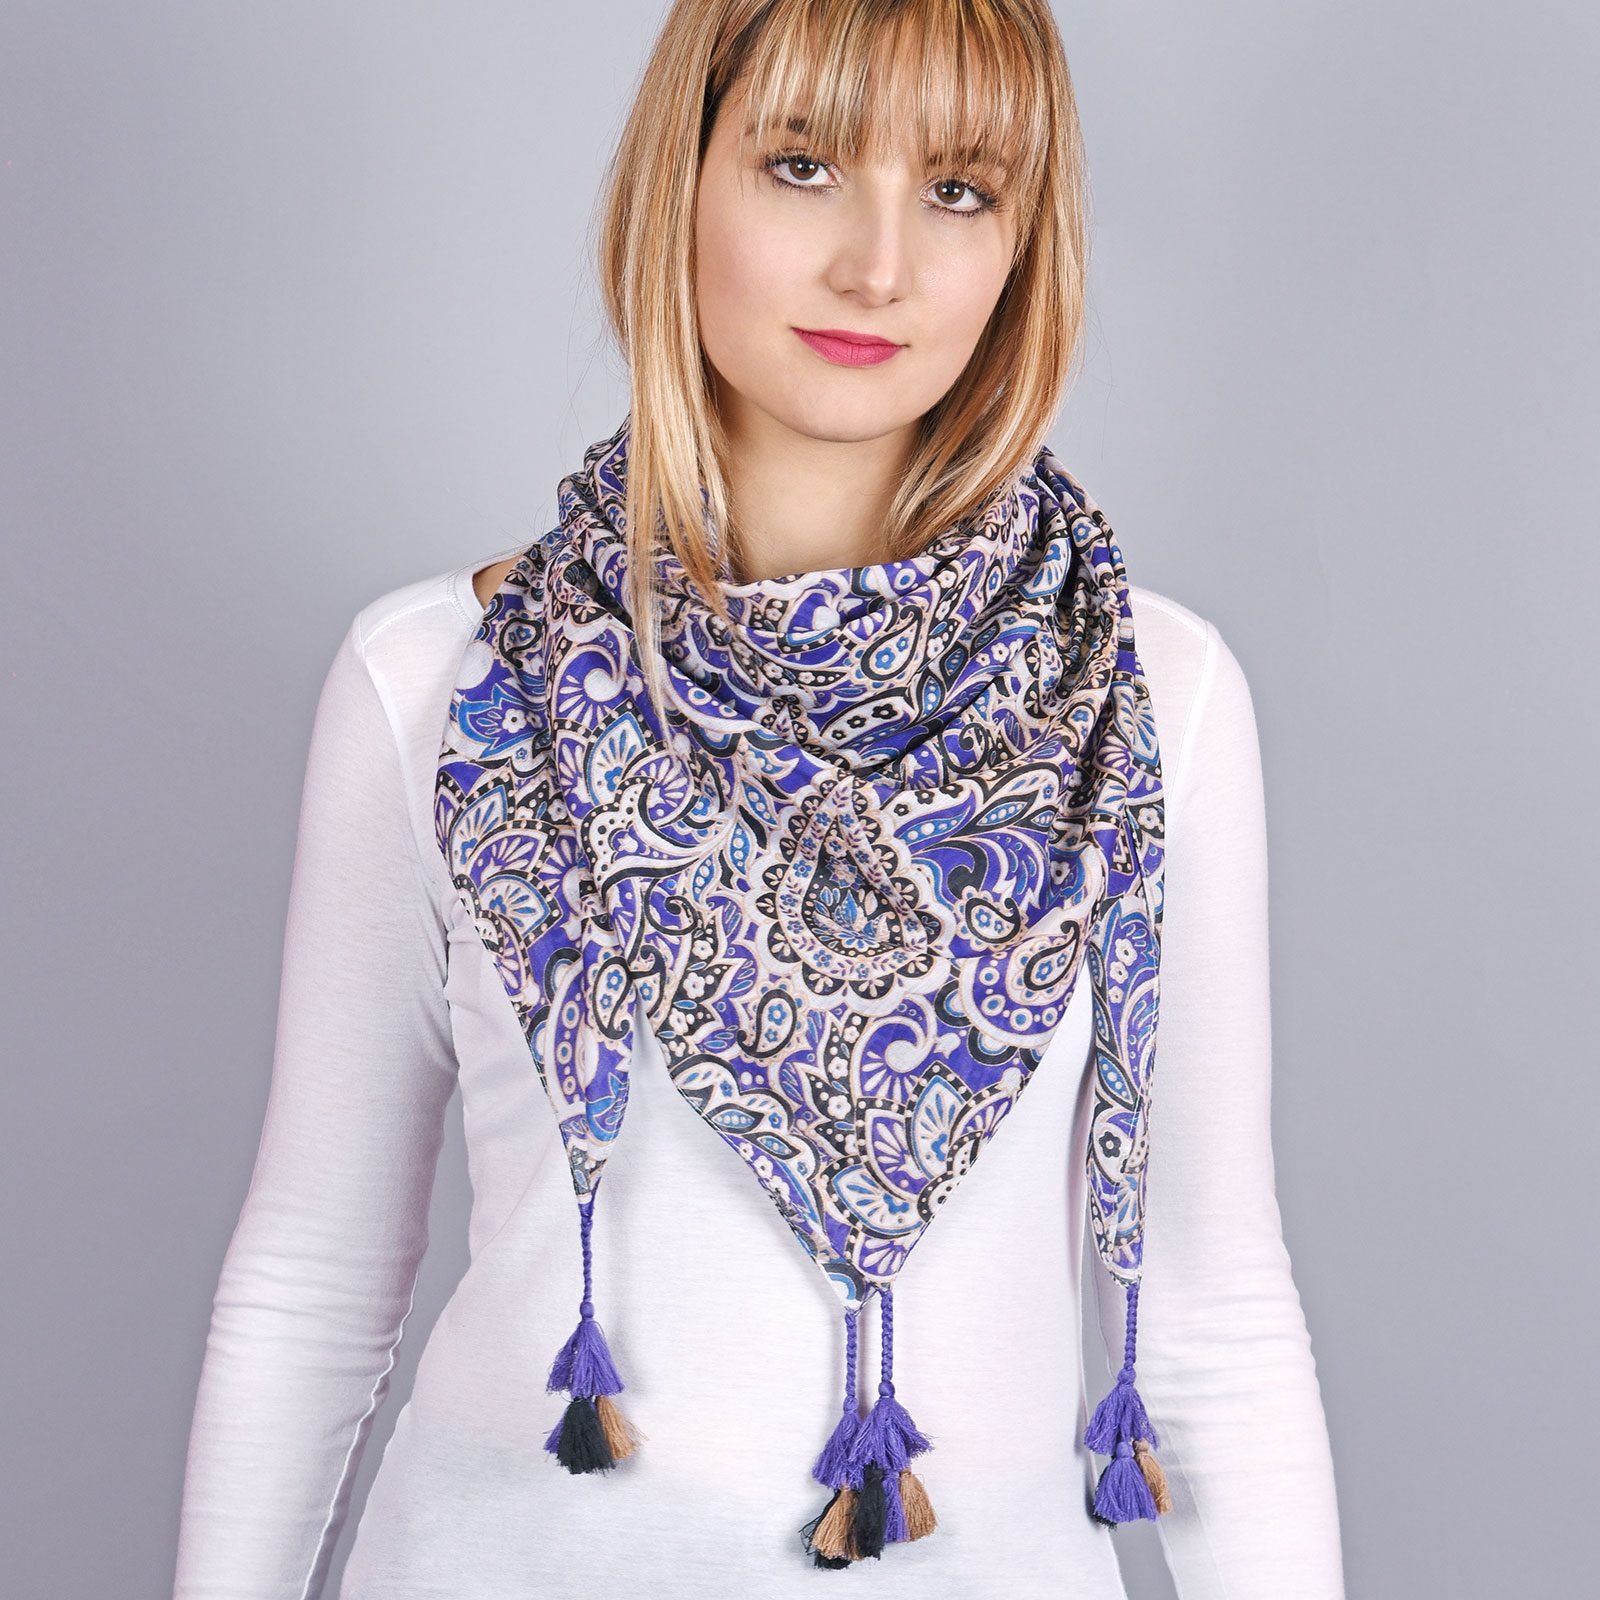 http://chantier.allee-du-foulard.fr/wp-content/uploads/2018/03/AT-04313-VF16-1-1600x1600.jpg